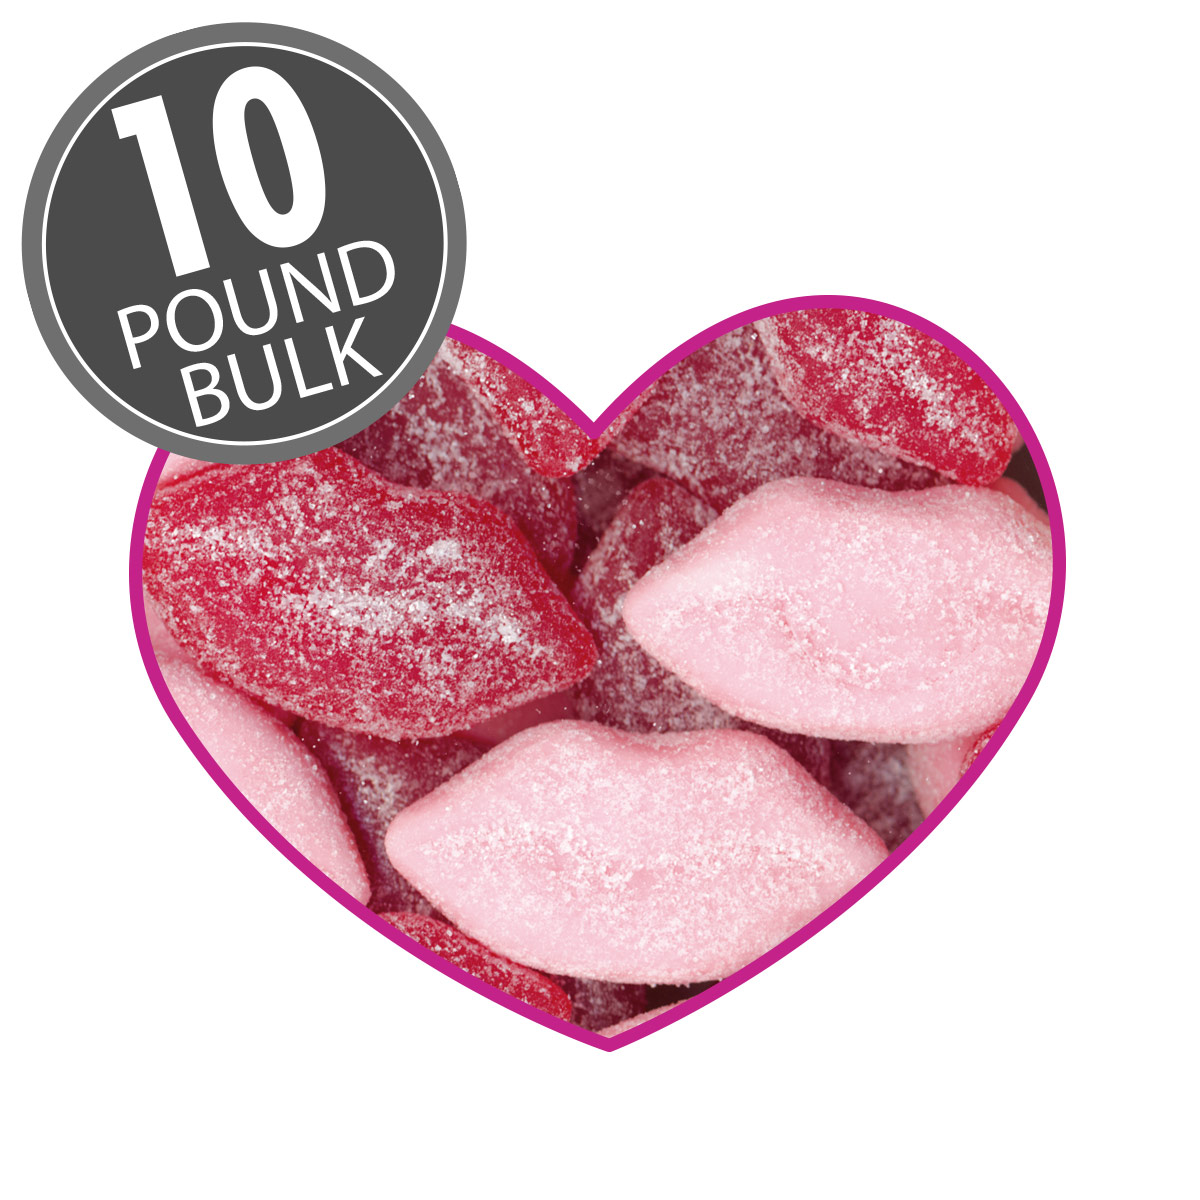 Sour Smoochi Lips - 10 lbs bulk